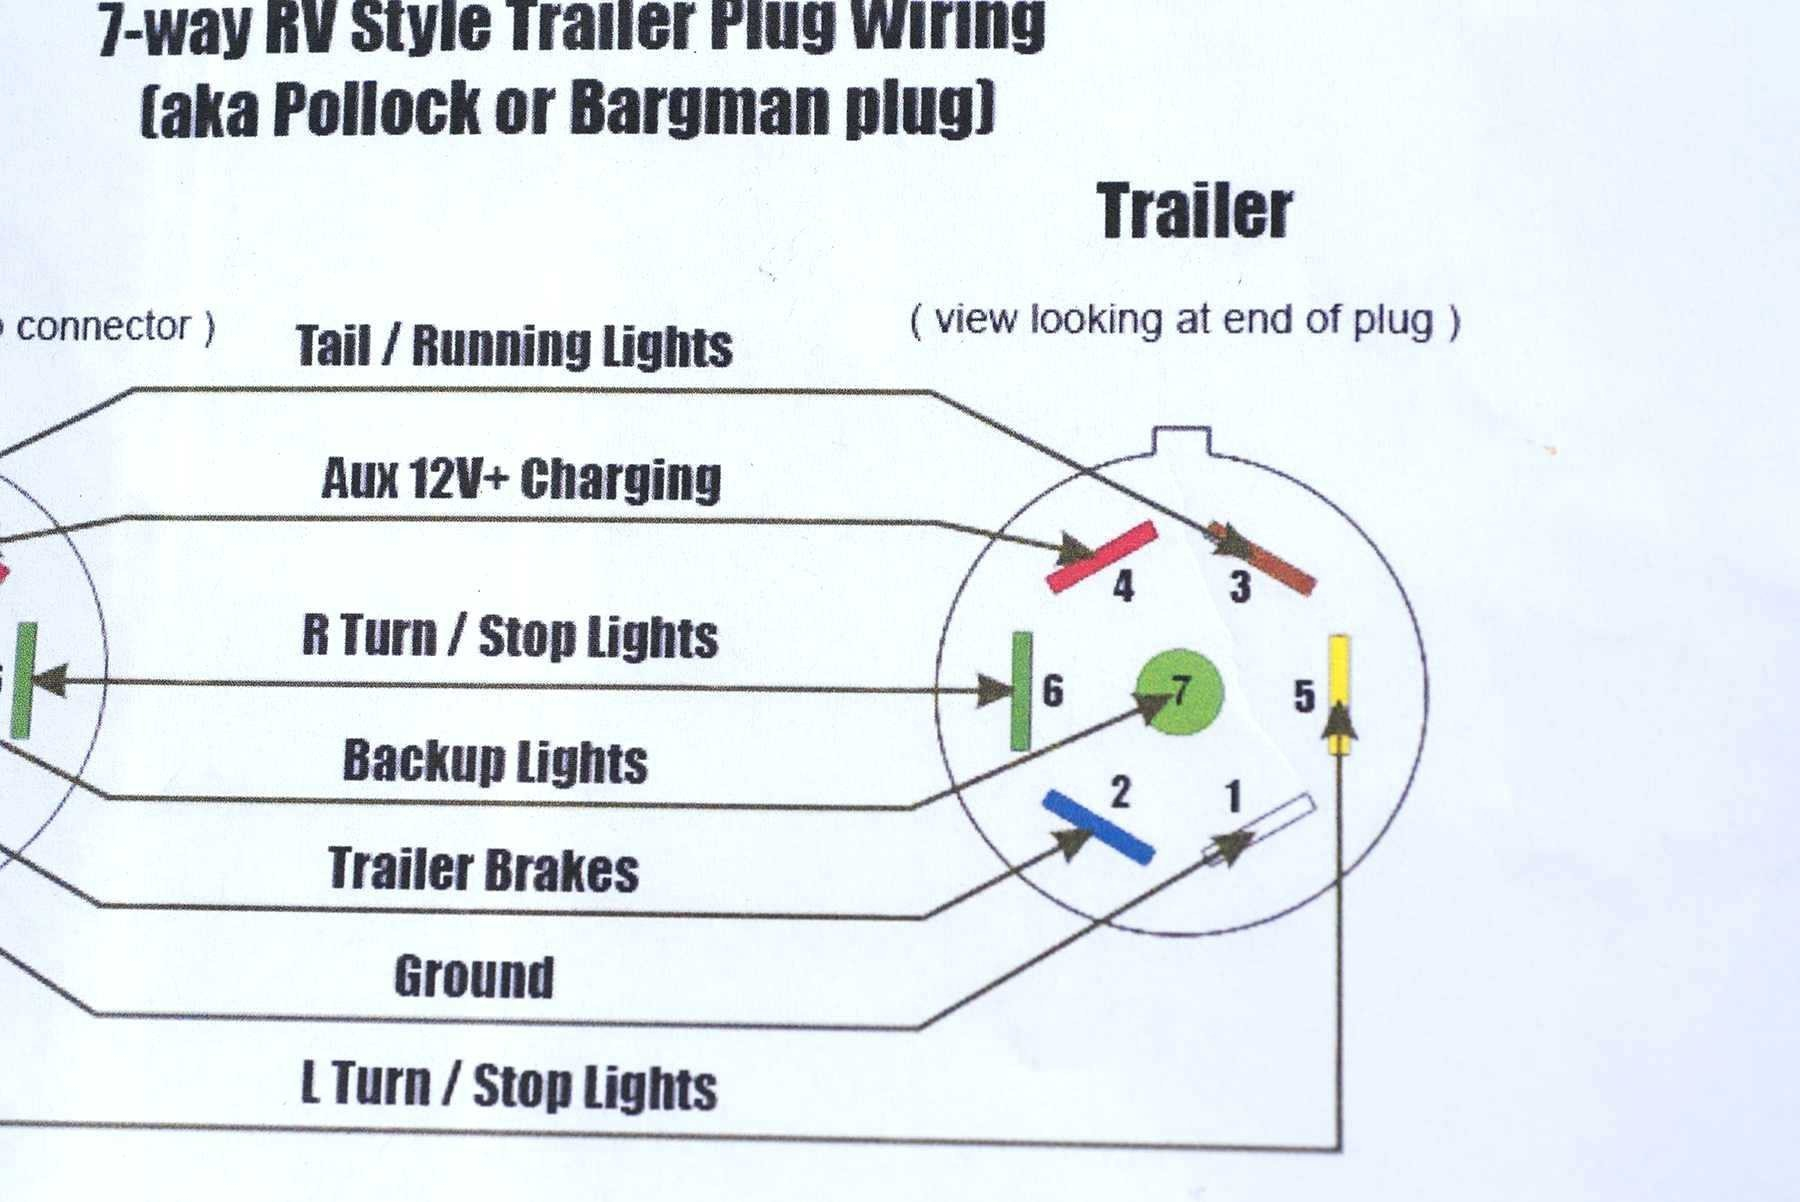 Keystone Trailer Wiring Diagram | Trailer Wiring Diagram on trailer harness diagram, trailer plug diagram, camper light switch, camper light cover, rv light diagram, camper light plug, standard 7 wire trailer diagram, 4 wire trailer diagram, camper electrical diagram,